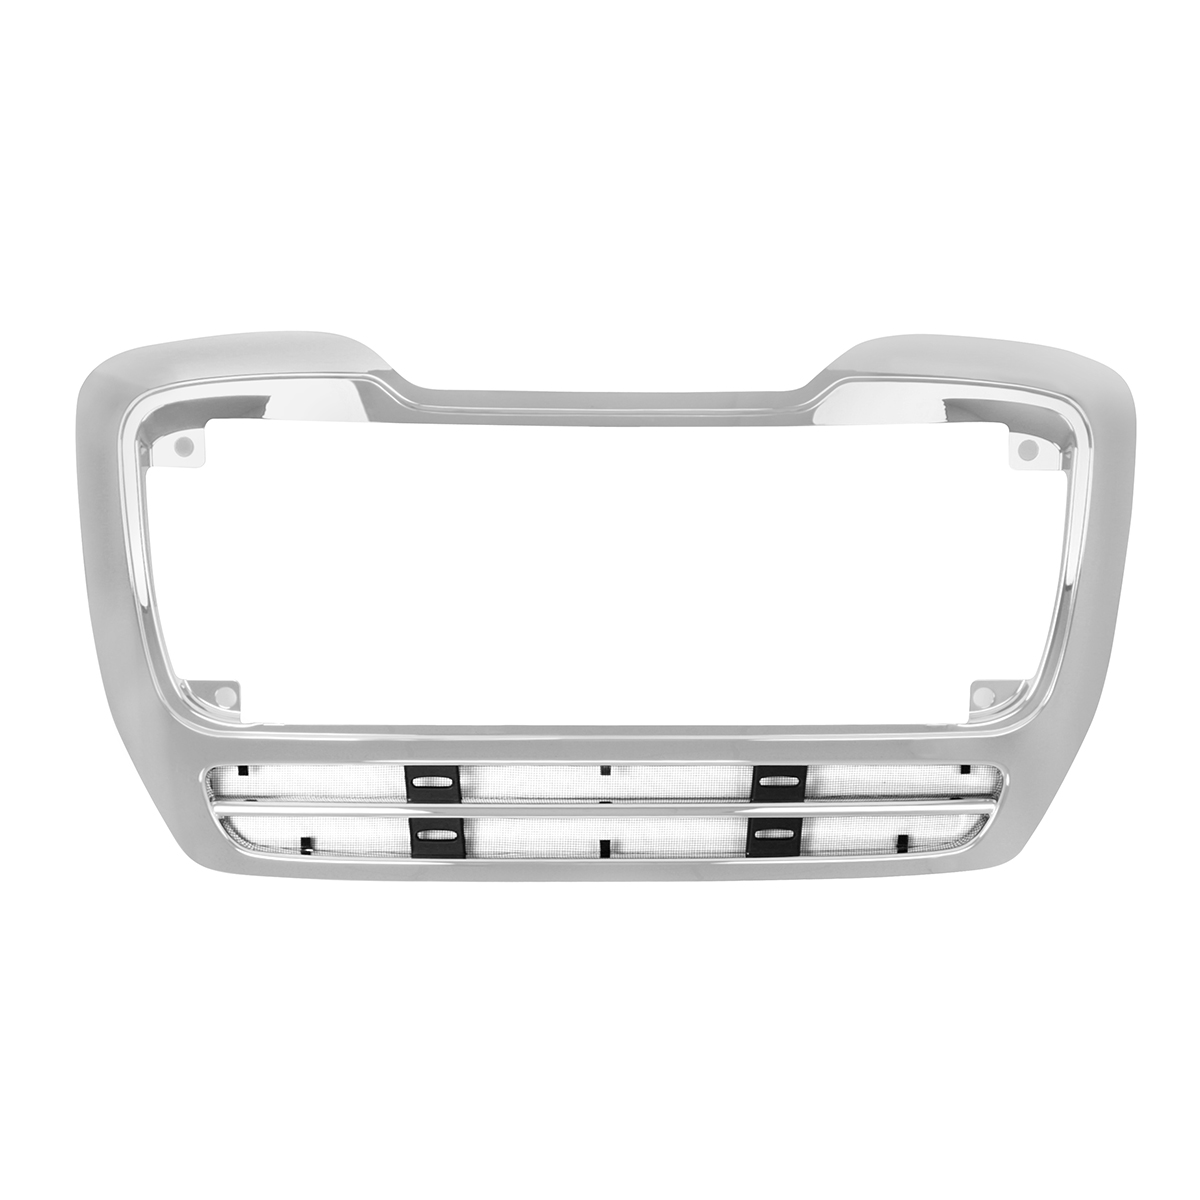 89304 Chrome Plastic Grille Surround with Bug Screen for FL M2 112 Model